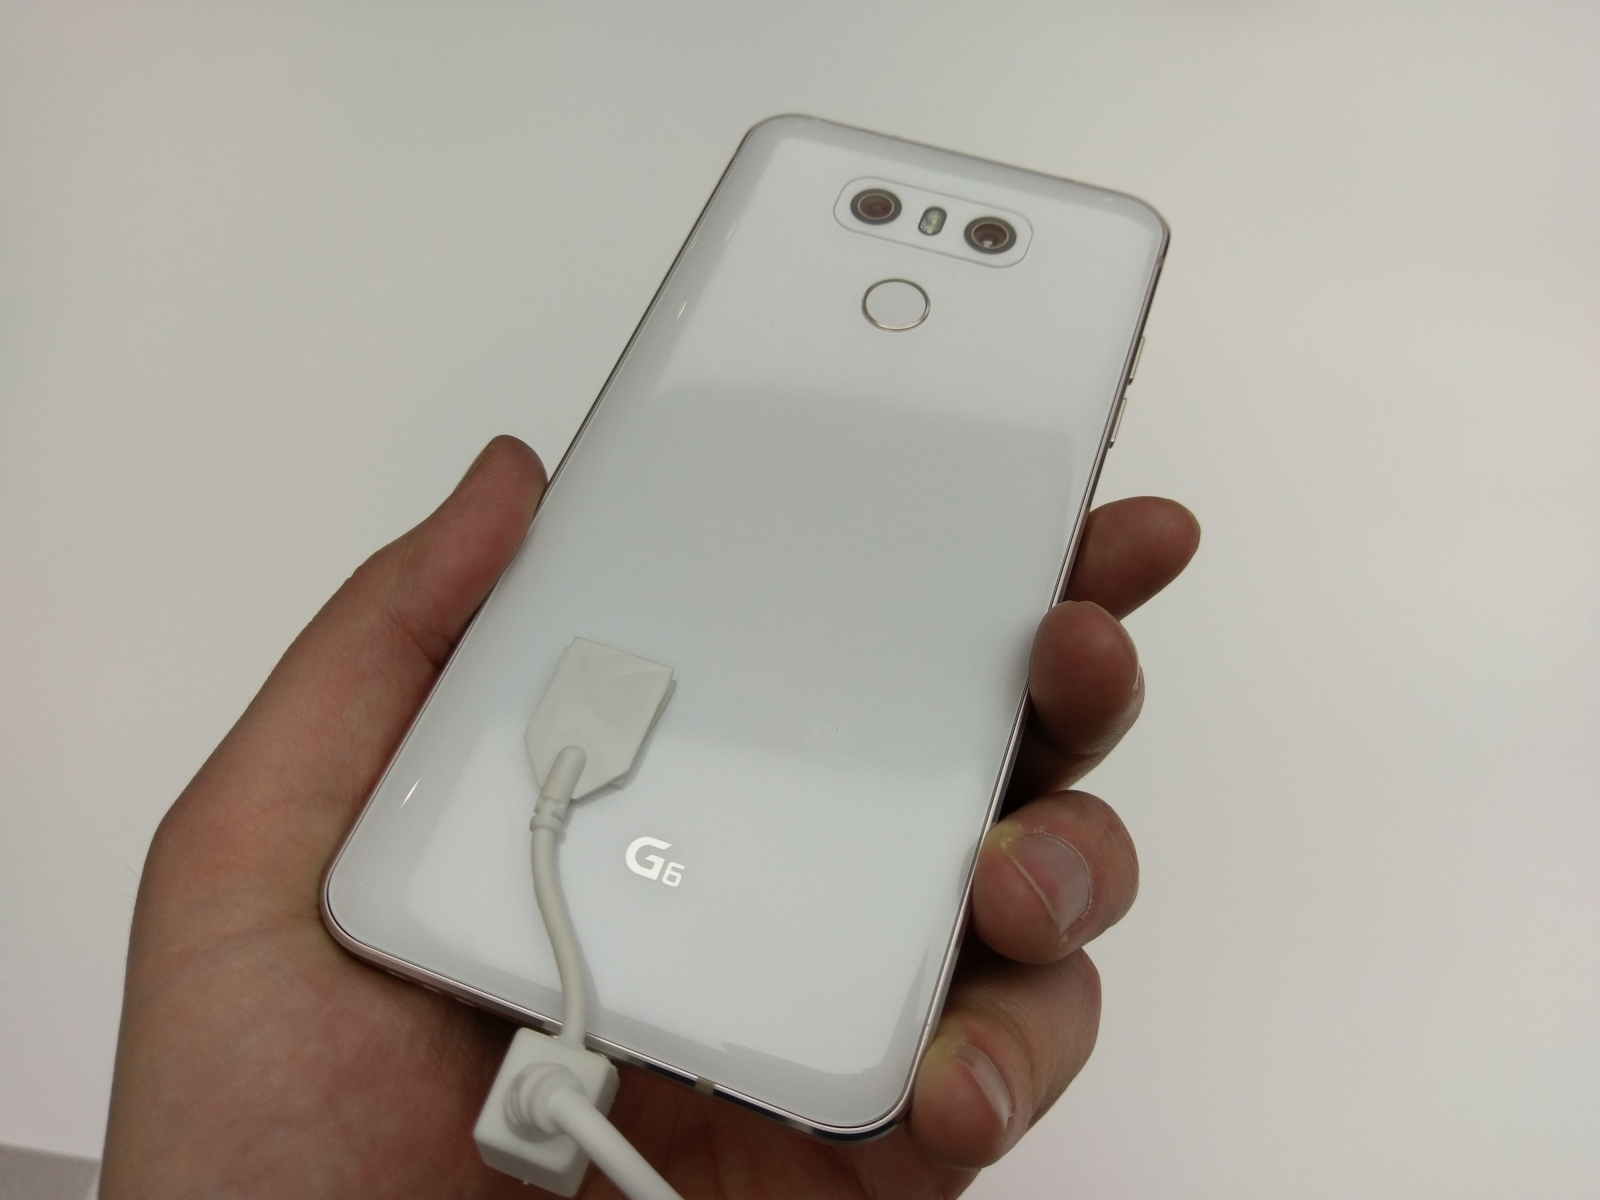 LG G6 hands-on glass